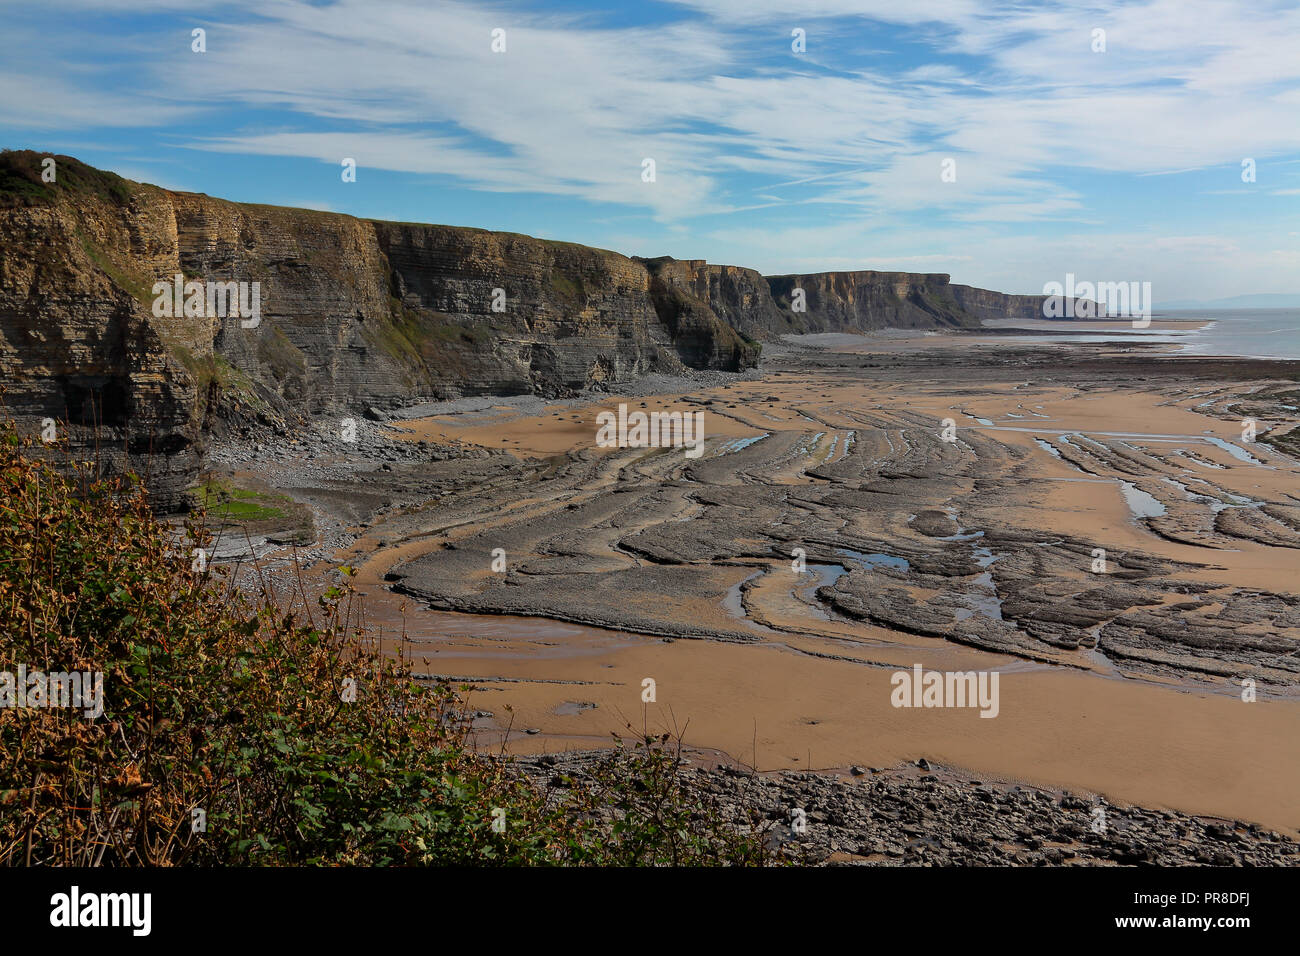 View south along the cliffs towards Monk nash point with the tide fully out exposing the eroded roack layers amid the sands on this 'Heritage' coast. - Stock Image